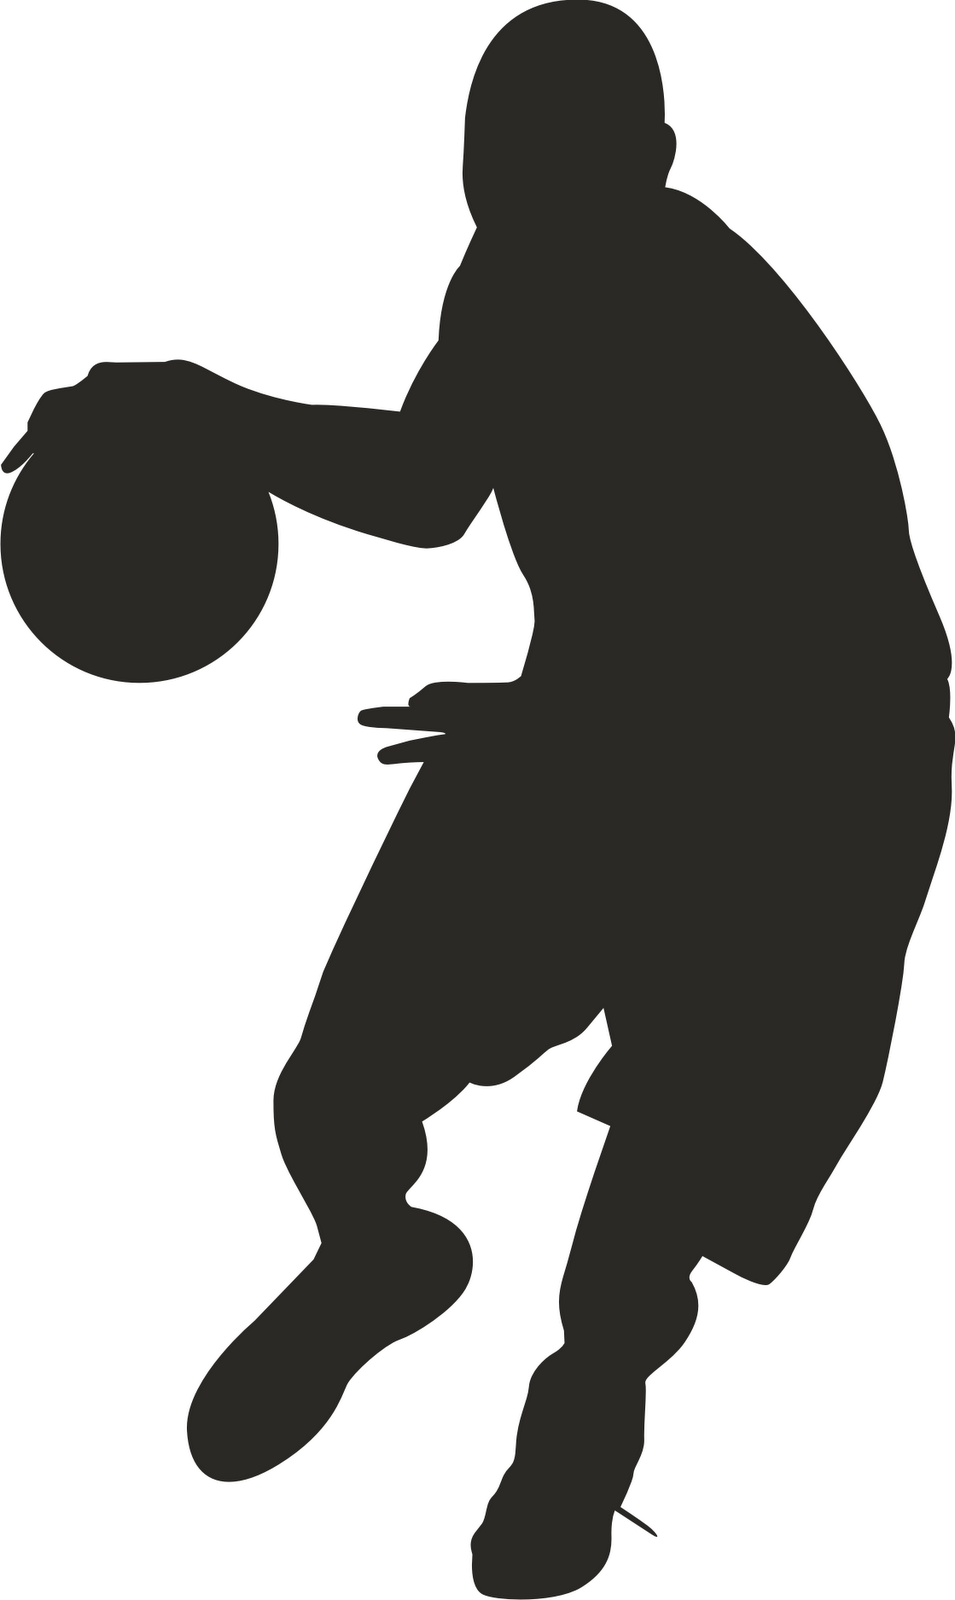 Clipart Basketball Player - Cliparts.co